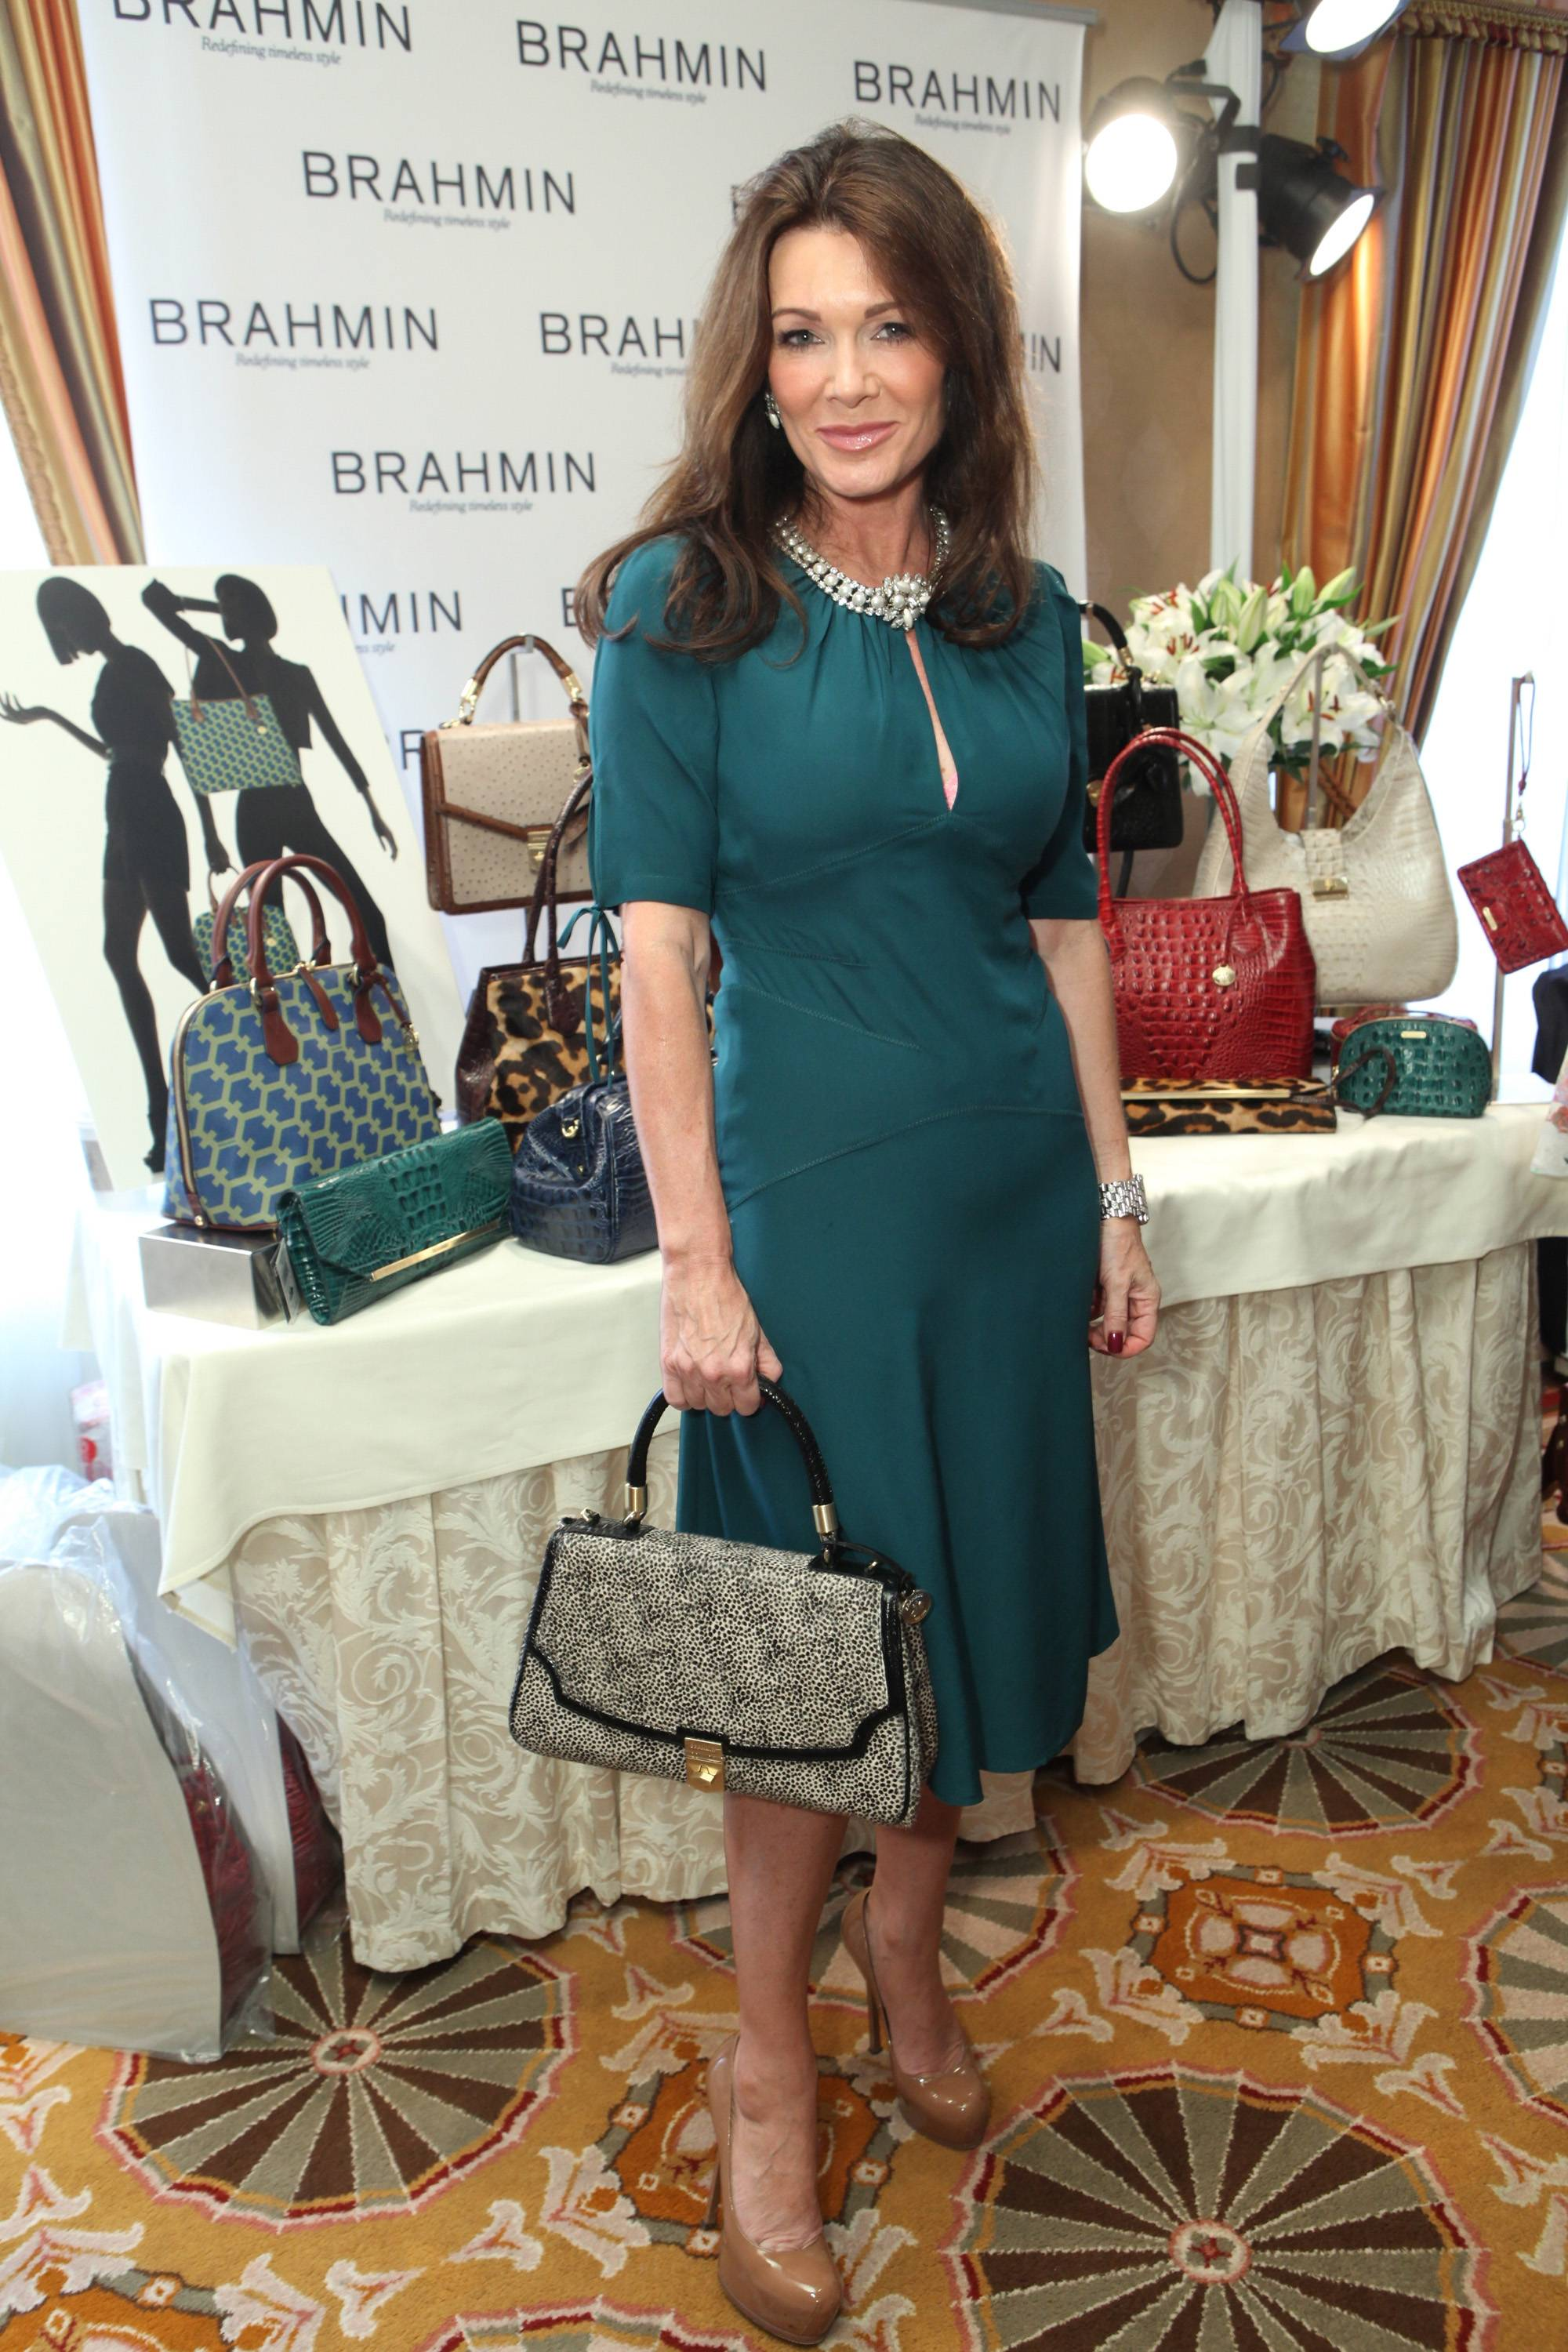 HBO Luxury Lounge In Honor Of The 64th Primetime Emmy Awards, Lisa Vanderpump